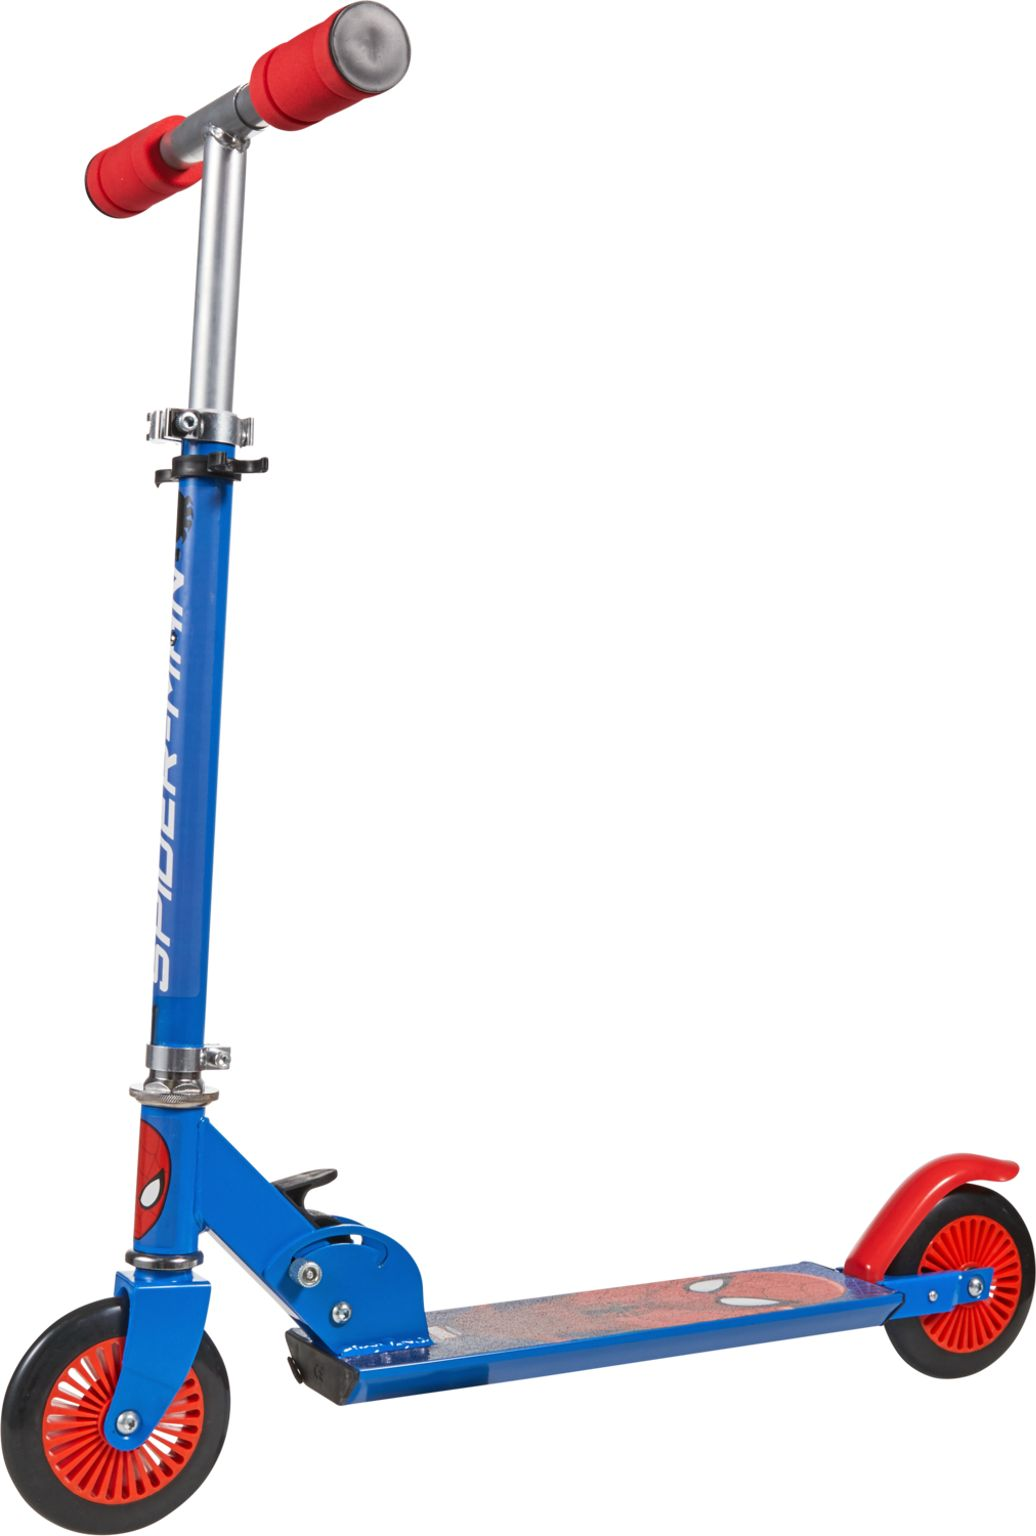 Image of 2-Rad-Scooter SPIDERMAN Klappbar